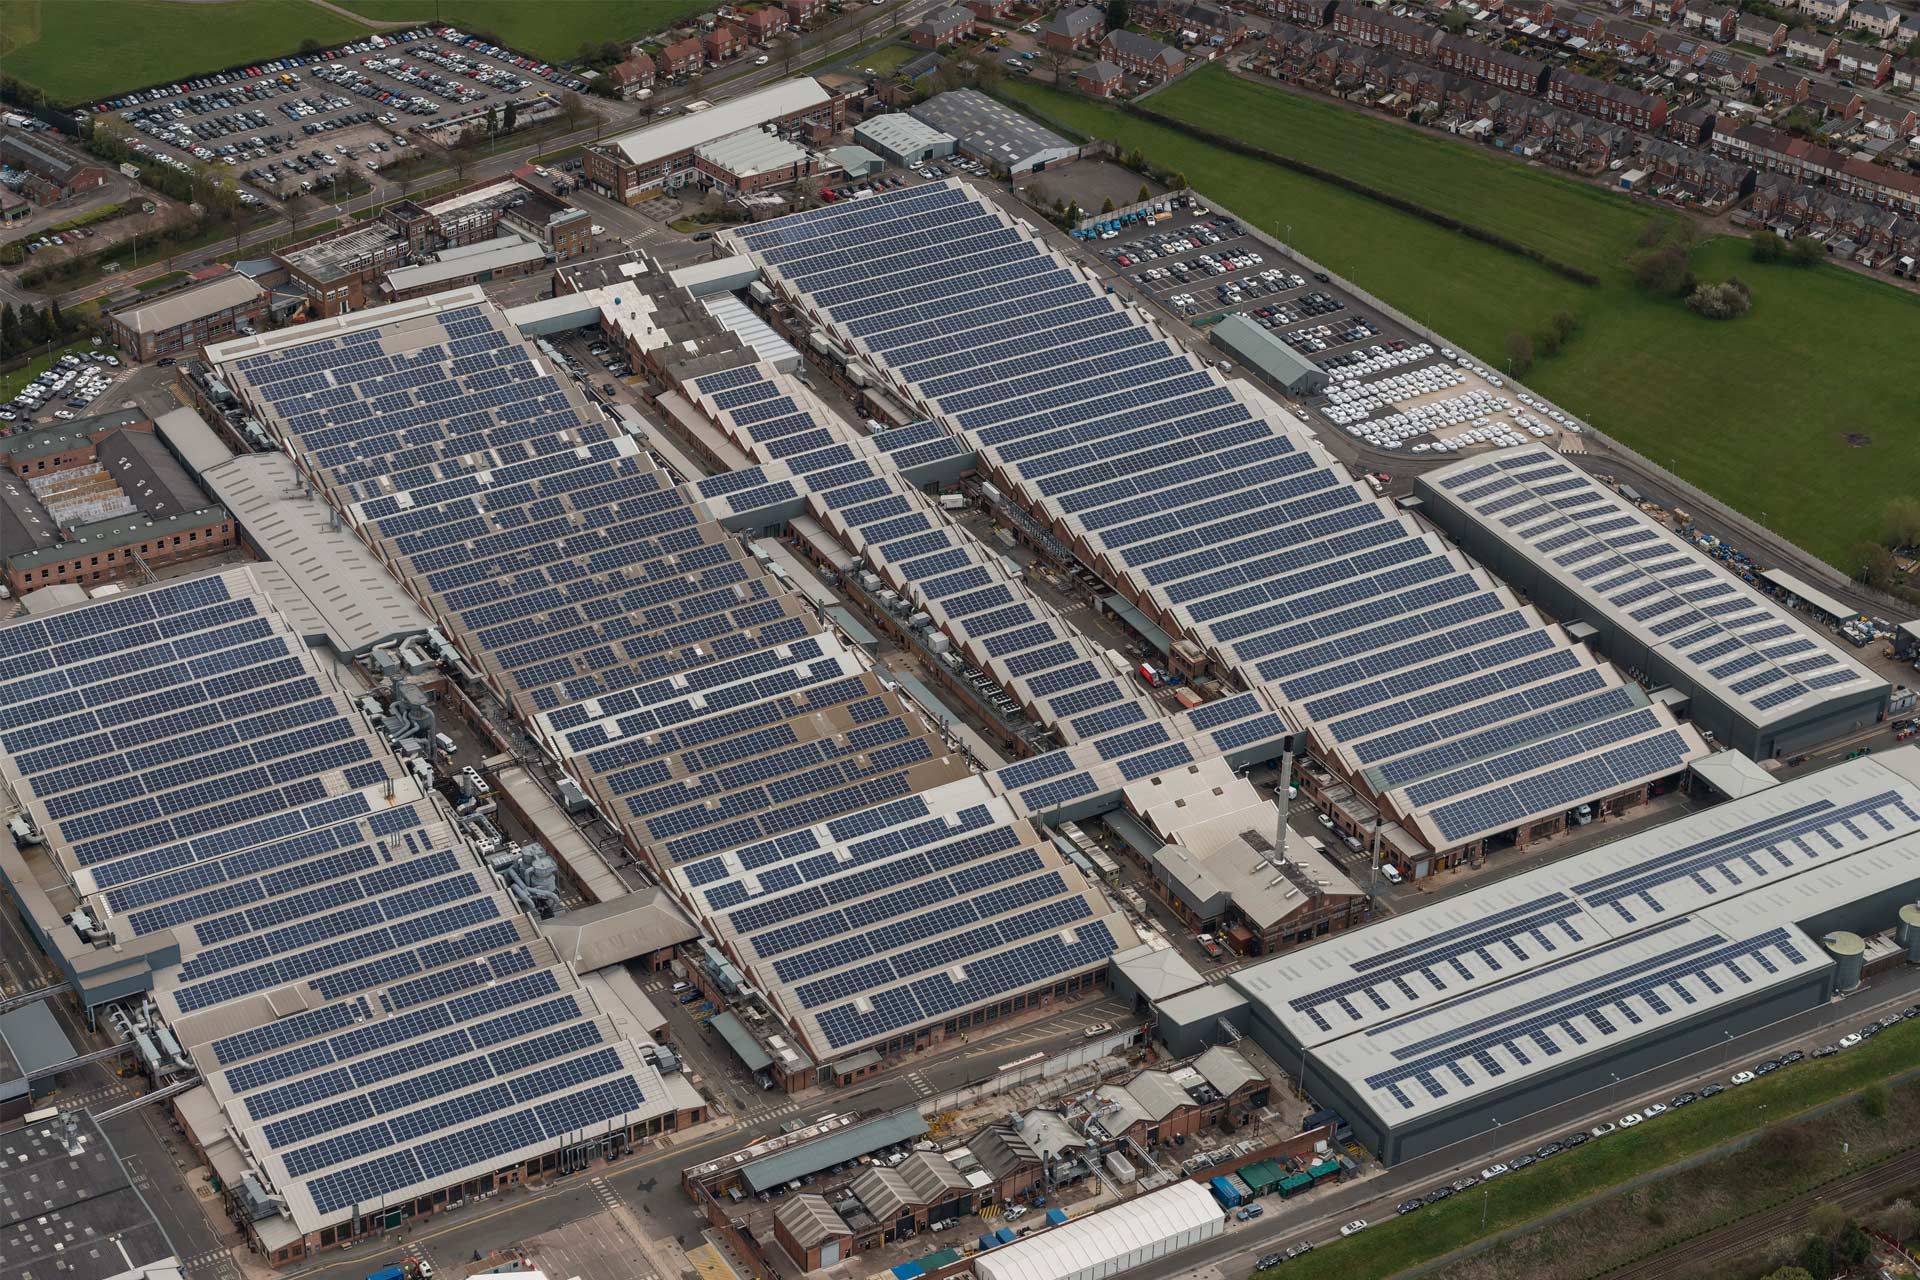 Bentley factory with roof top solar panels